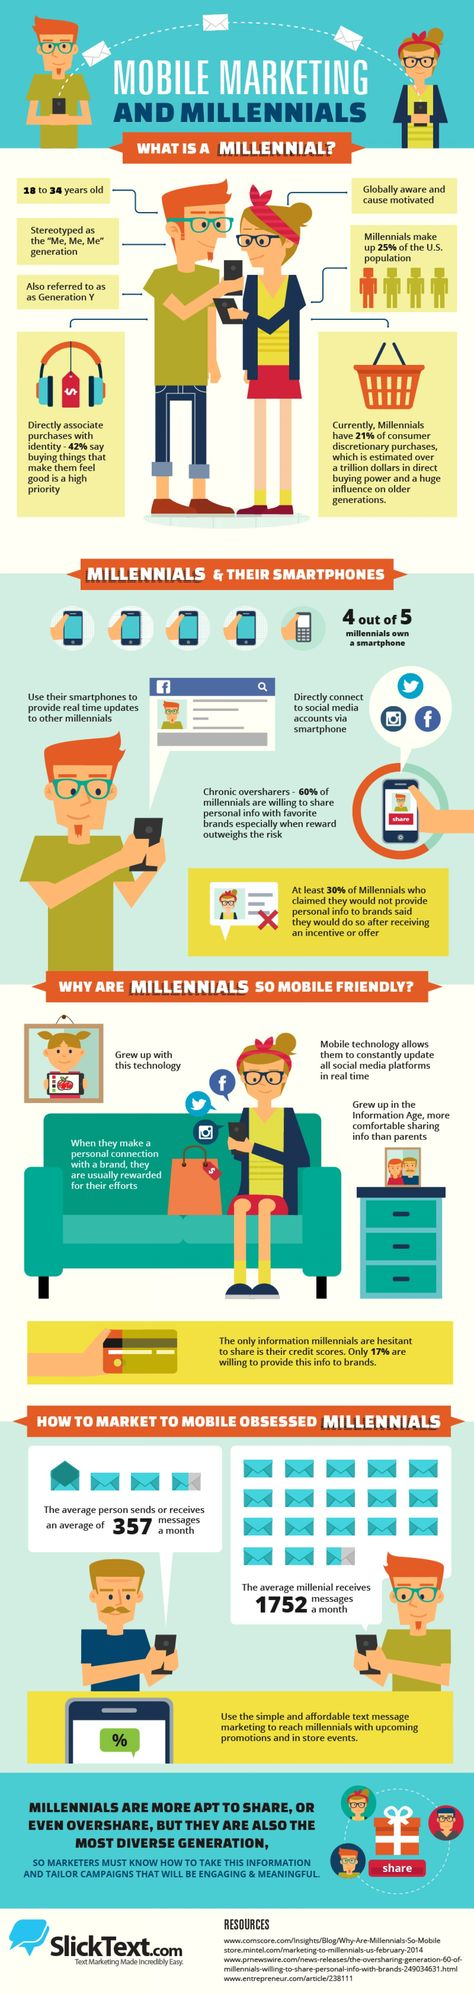 Mobile Marketing And Millennials